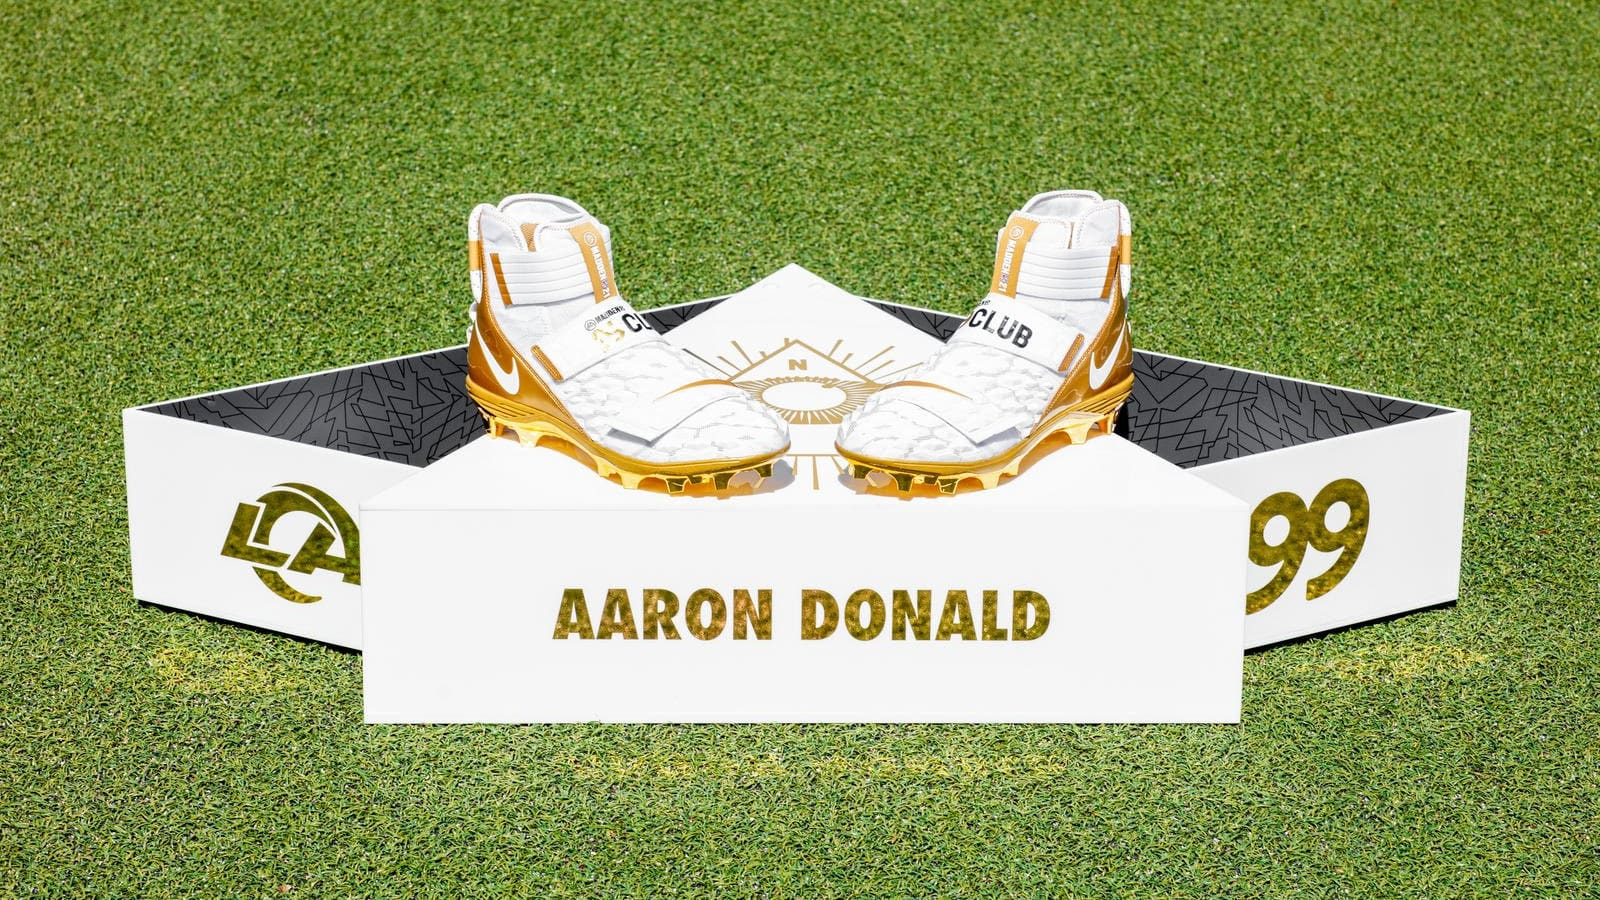 Aaron Donald Madden 99 Club Nike Cleats